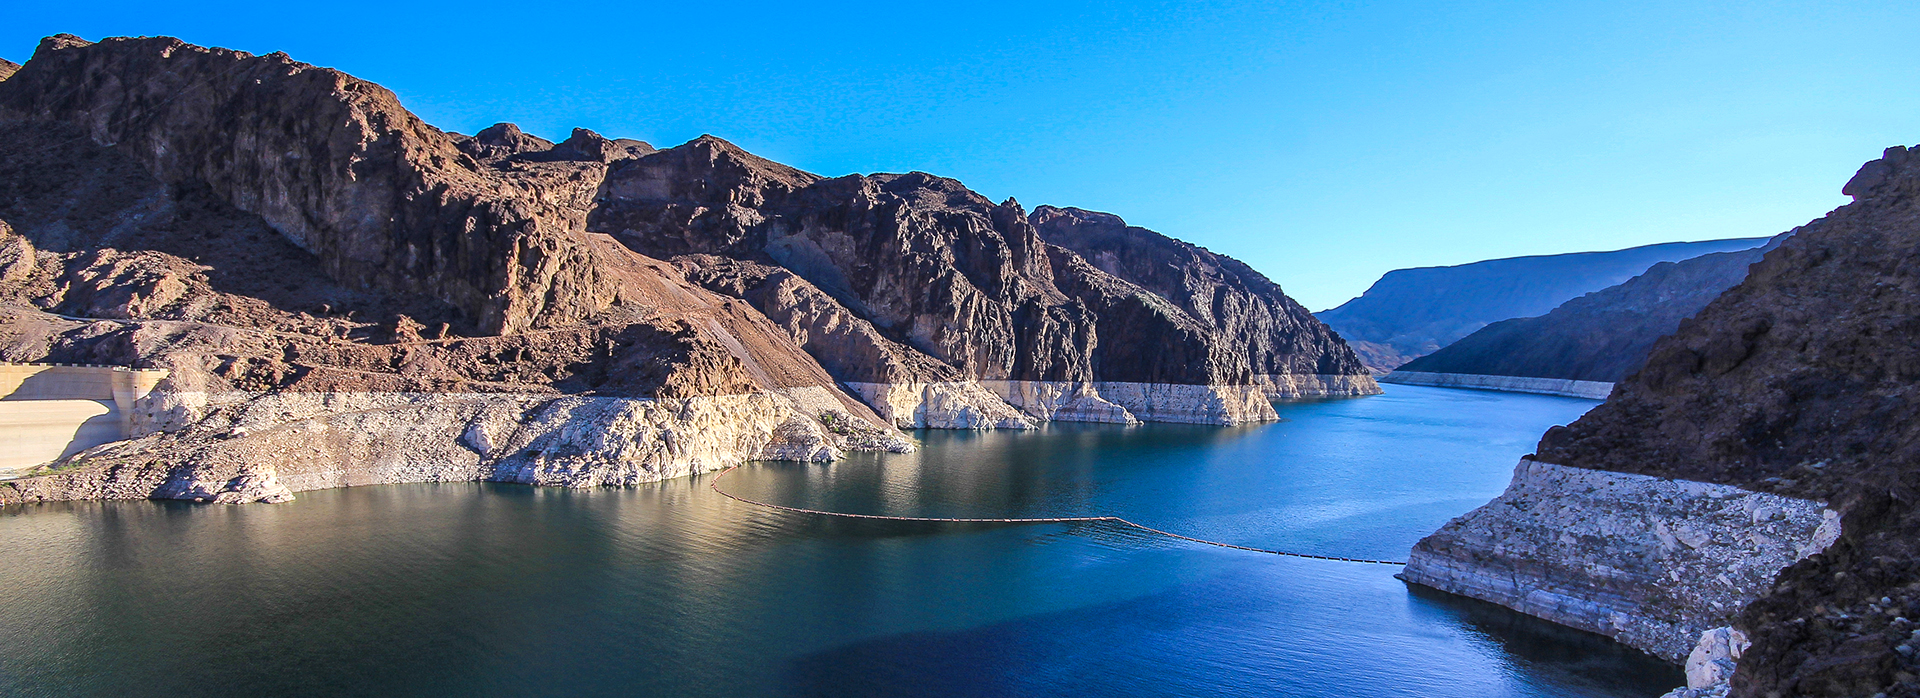 Colorado River Lake Mead close to Hoover Dam